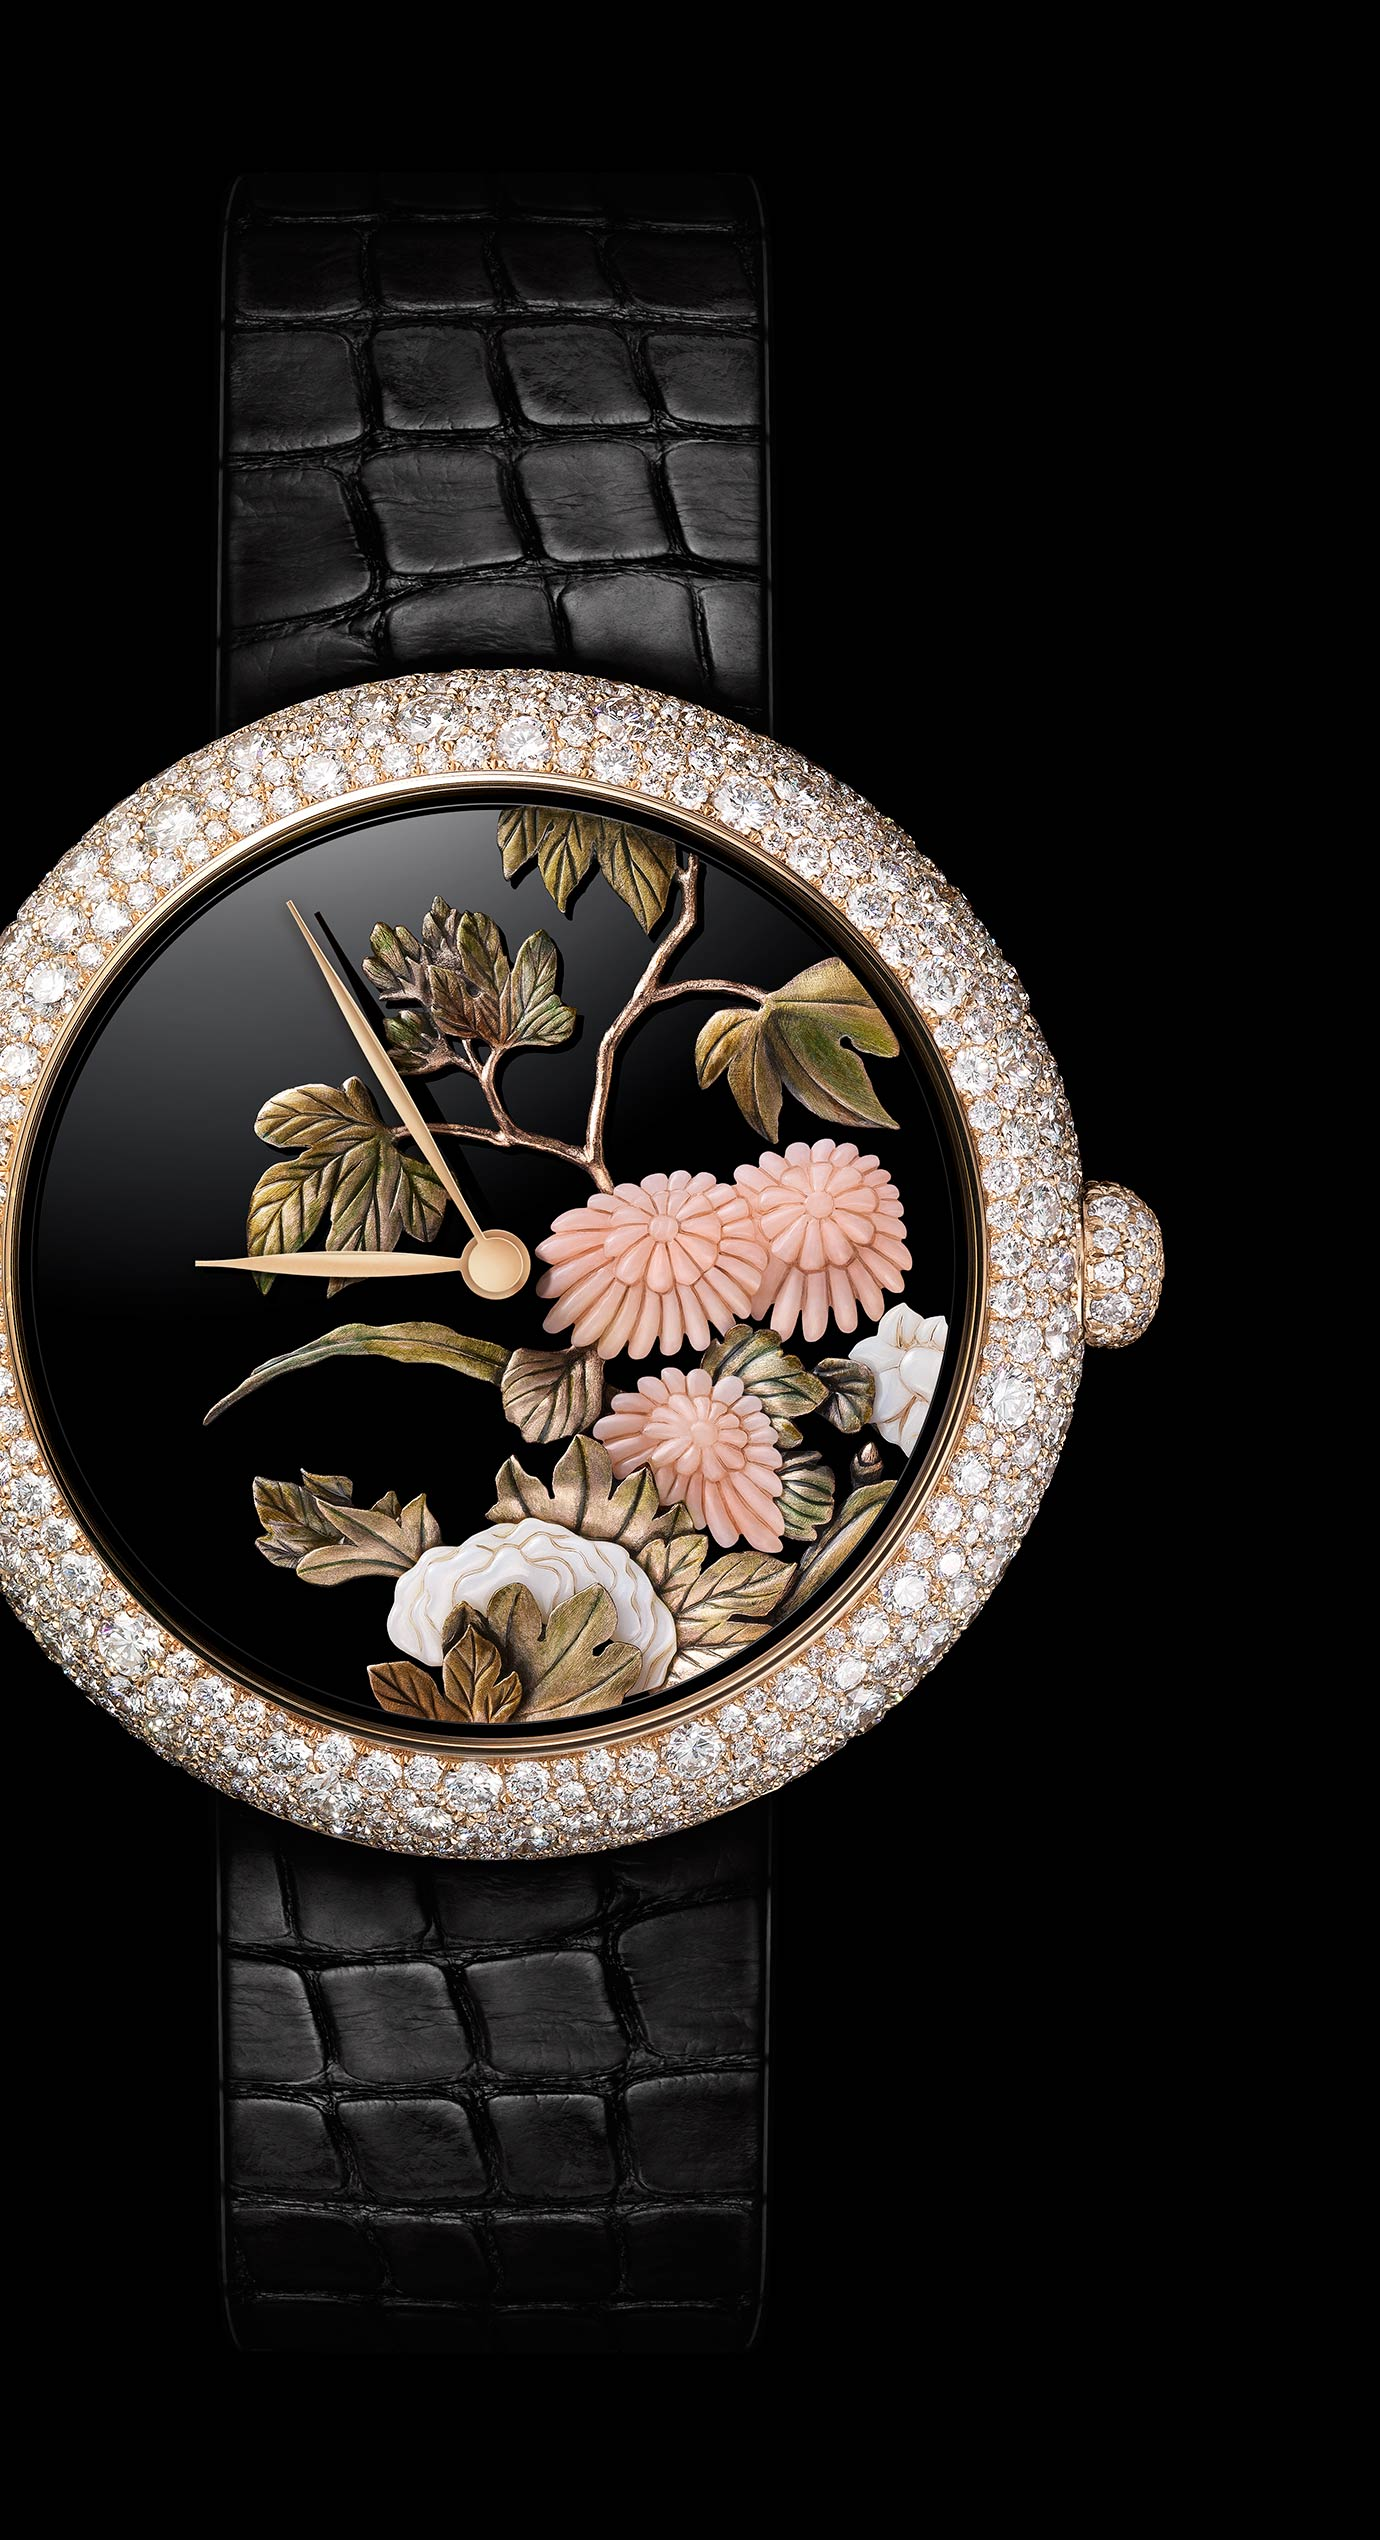 Mademoiselle Privé Coromandel watch produced using the sculpted gold technique. - Enlarged view